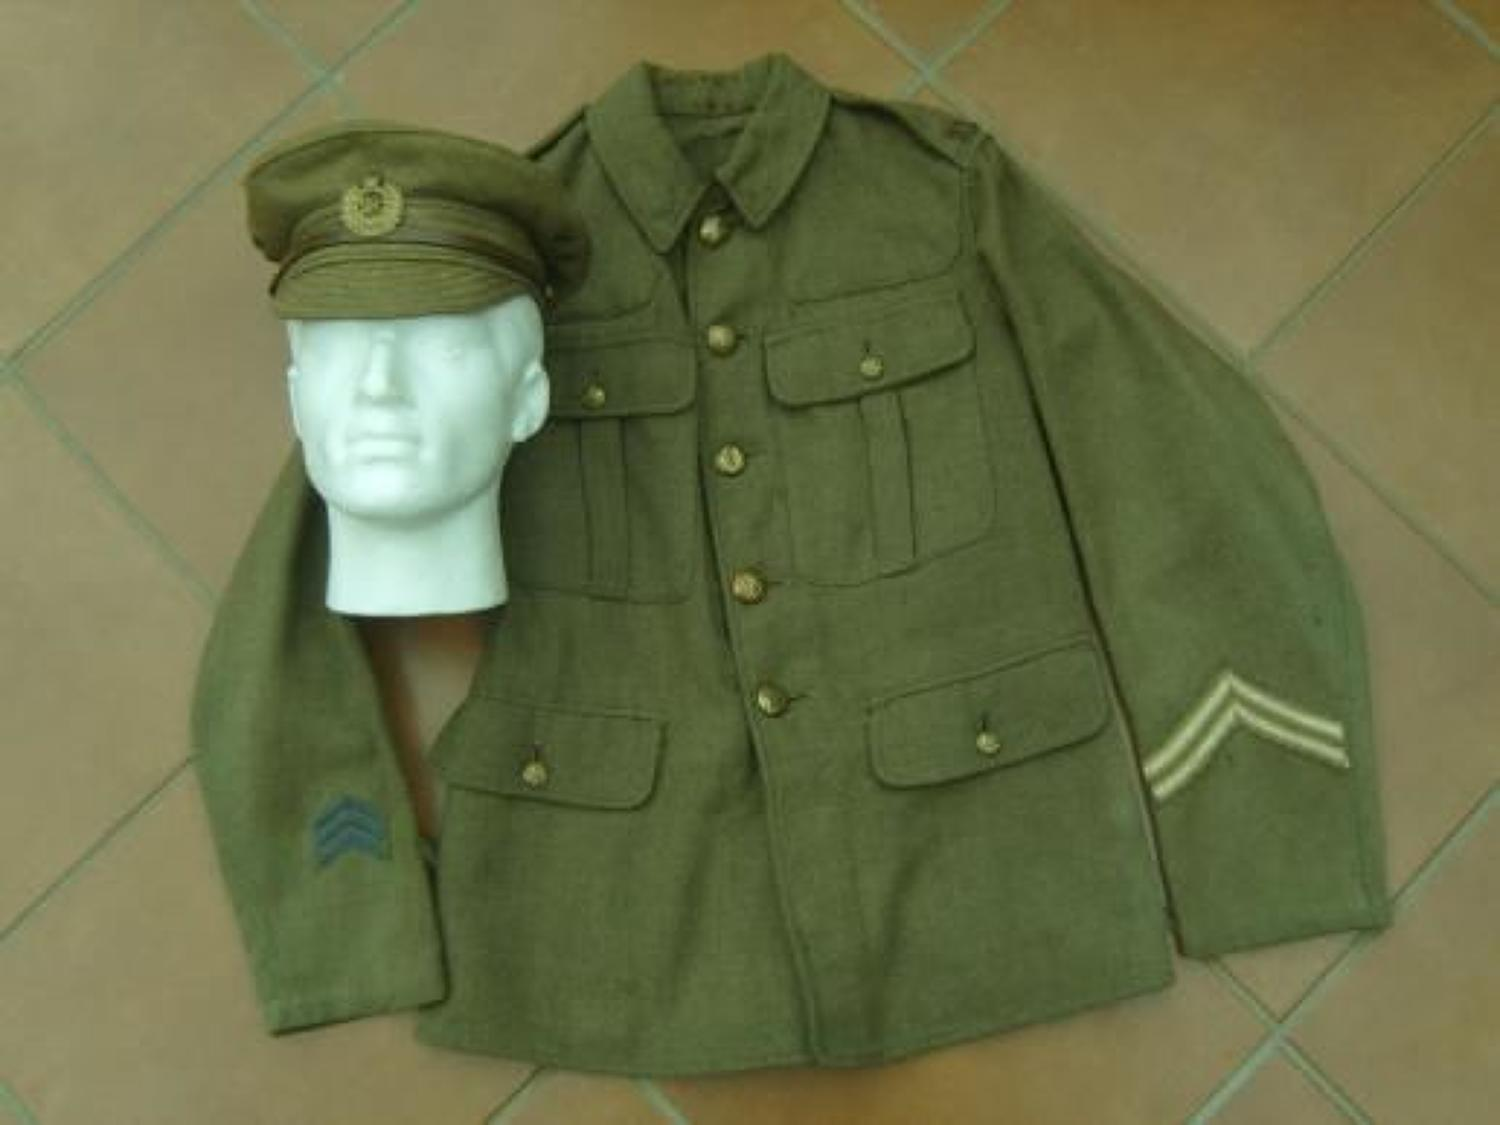 WW1 Royal Engineers British Other Ranks Tunic & Trench Cap to one man.